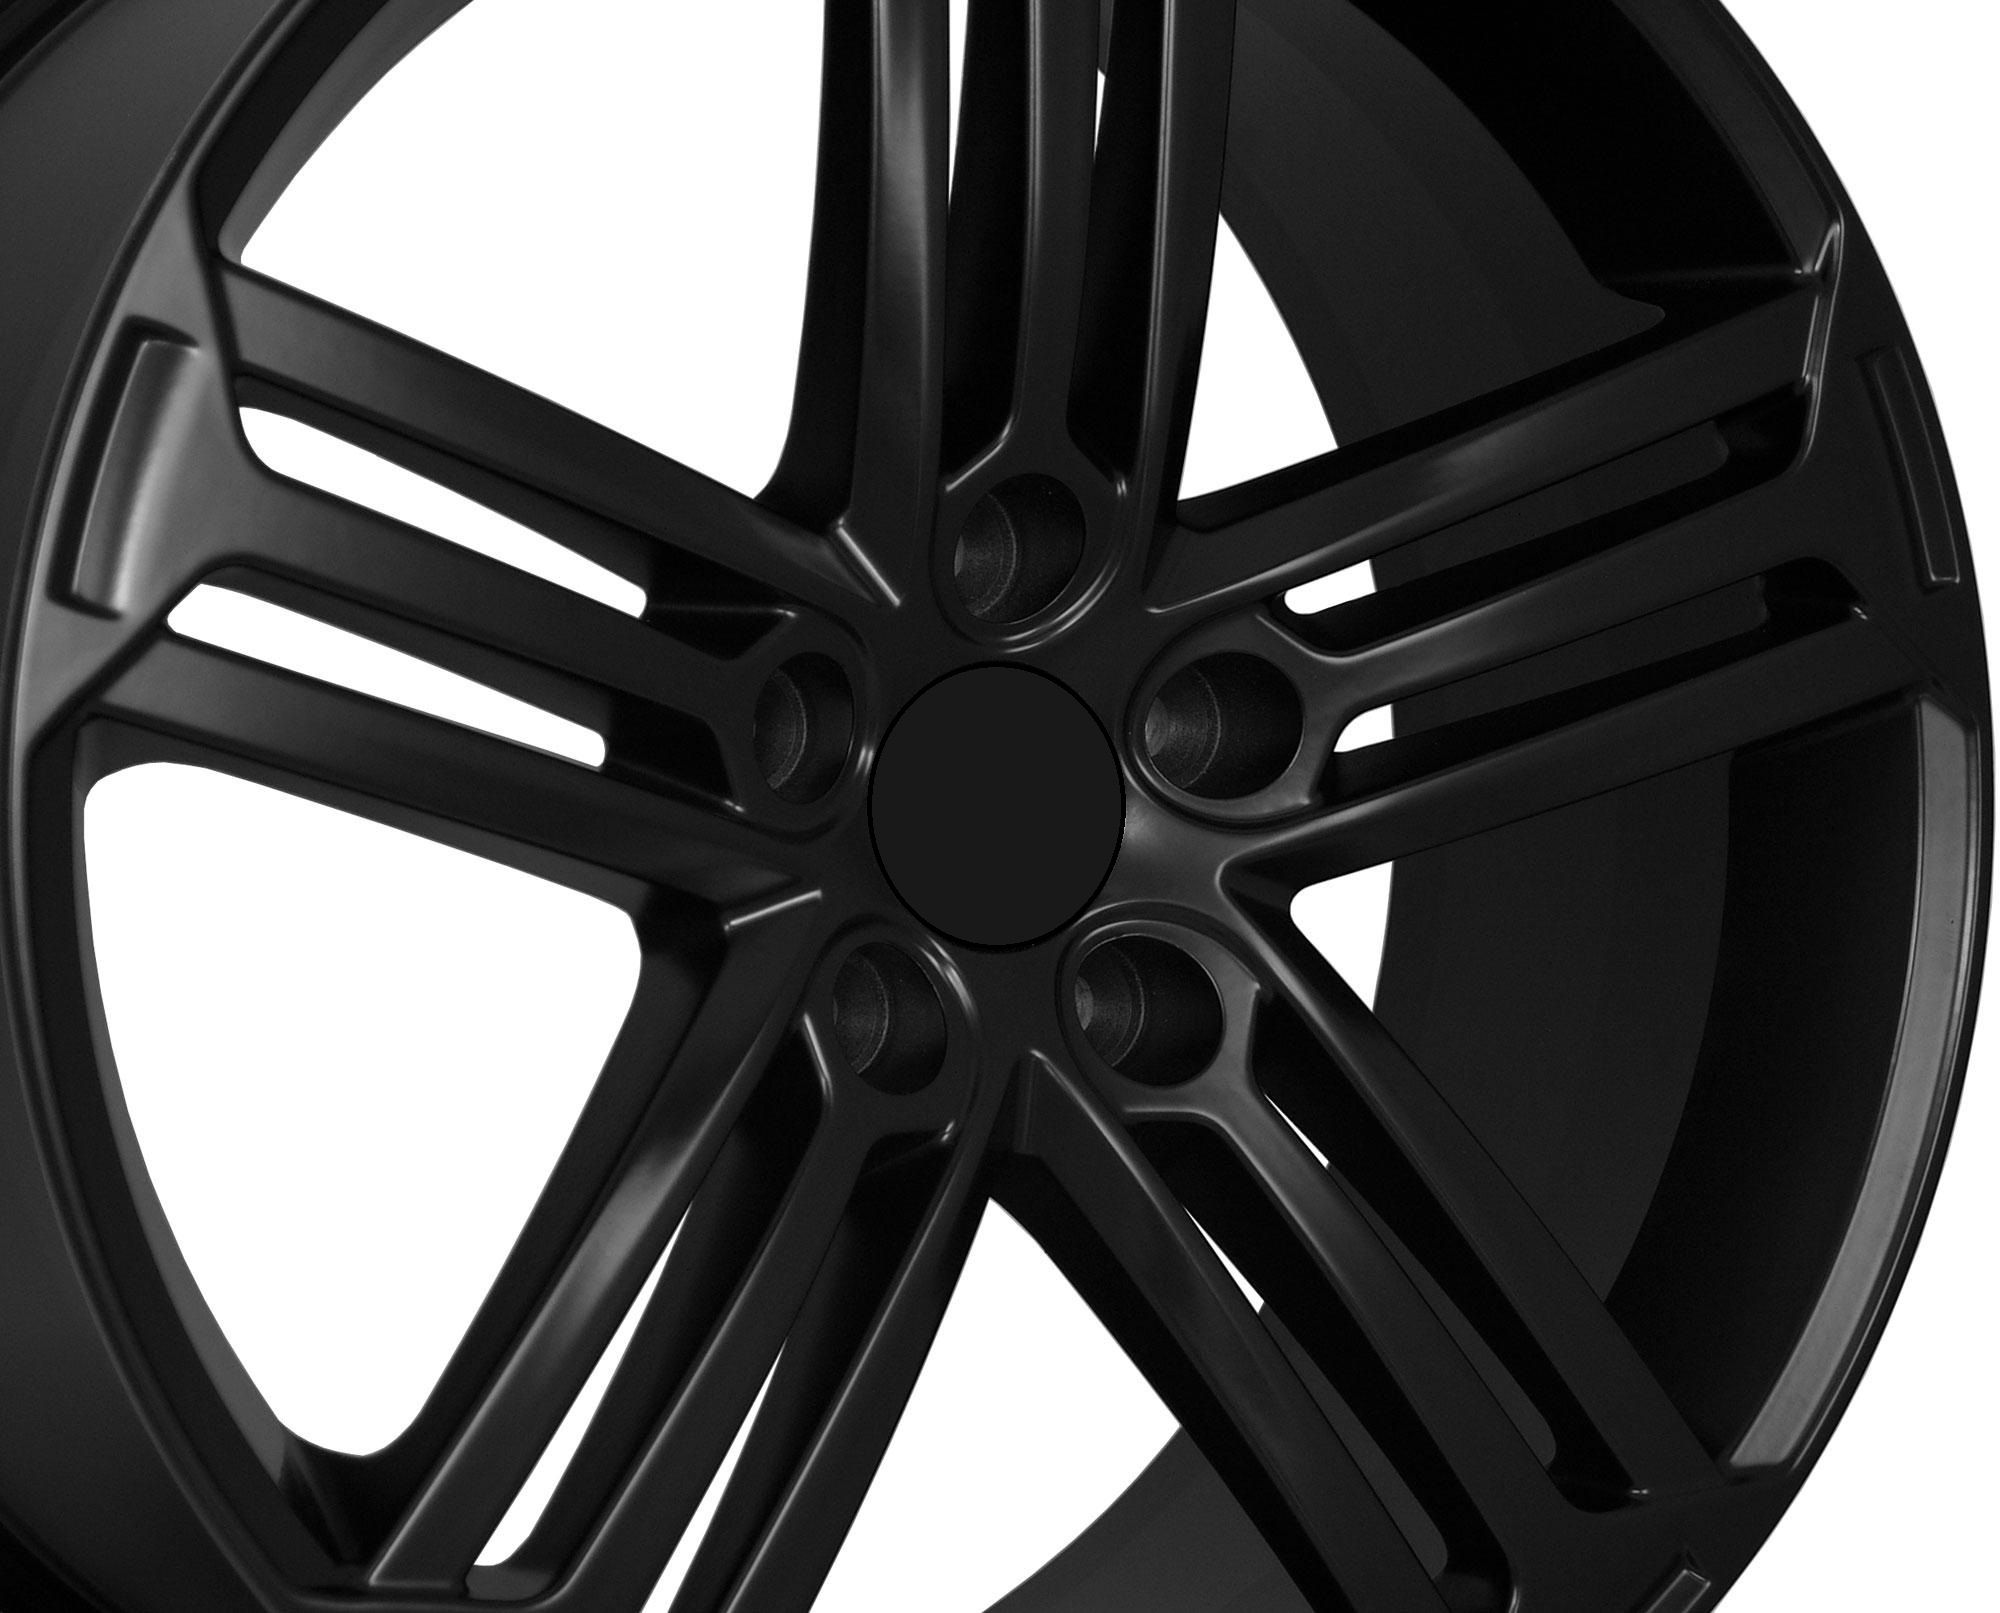 18 VW Golf R Style Matte Black Wheels Rims Fit VW Golf Rabbit GTI MKV